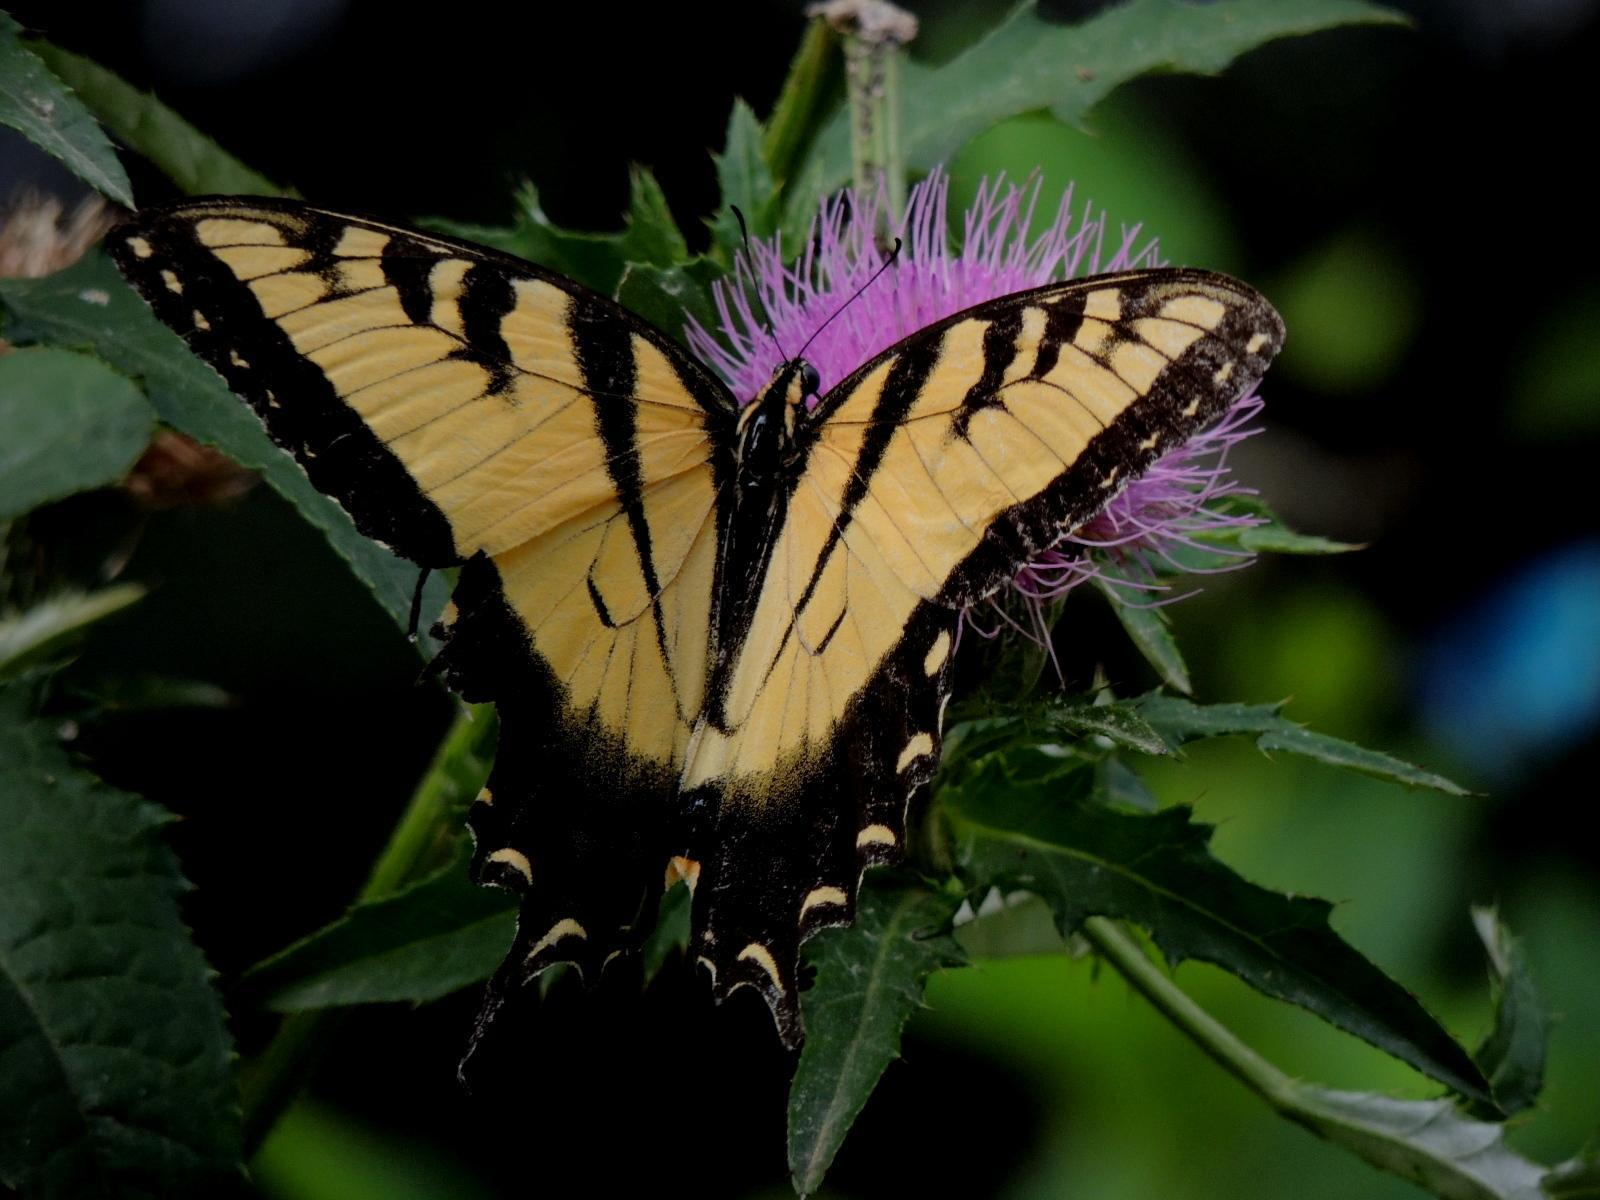 Eastern Tiger Swallowtail Photo by Tony Heindel